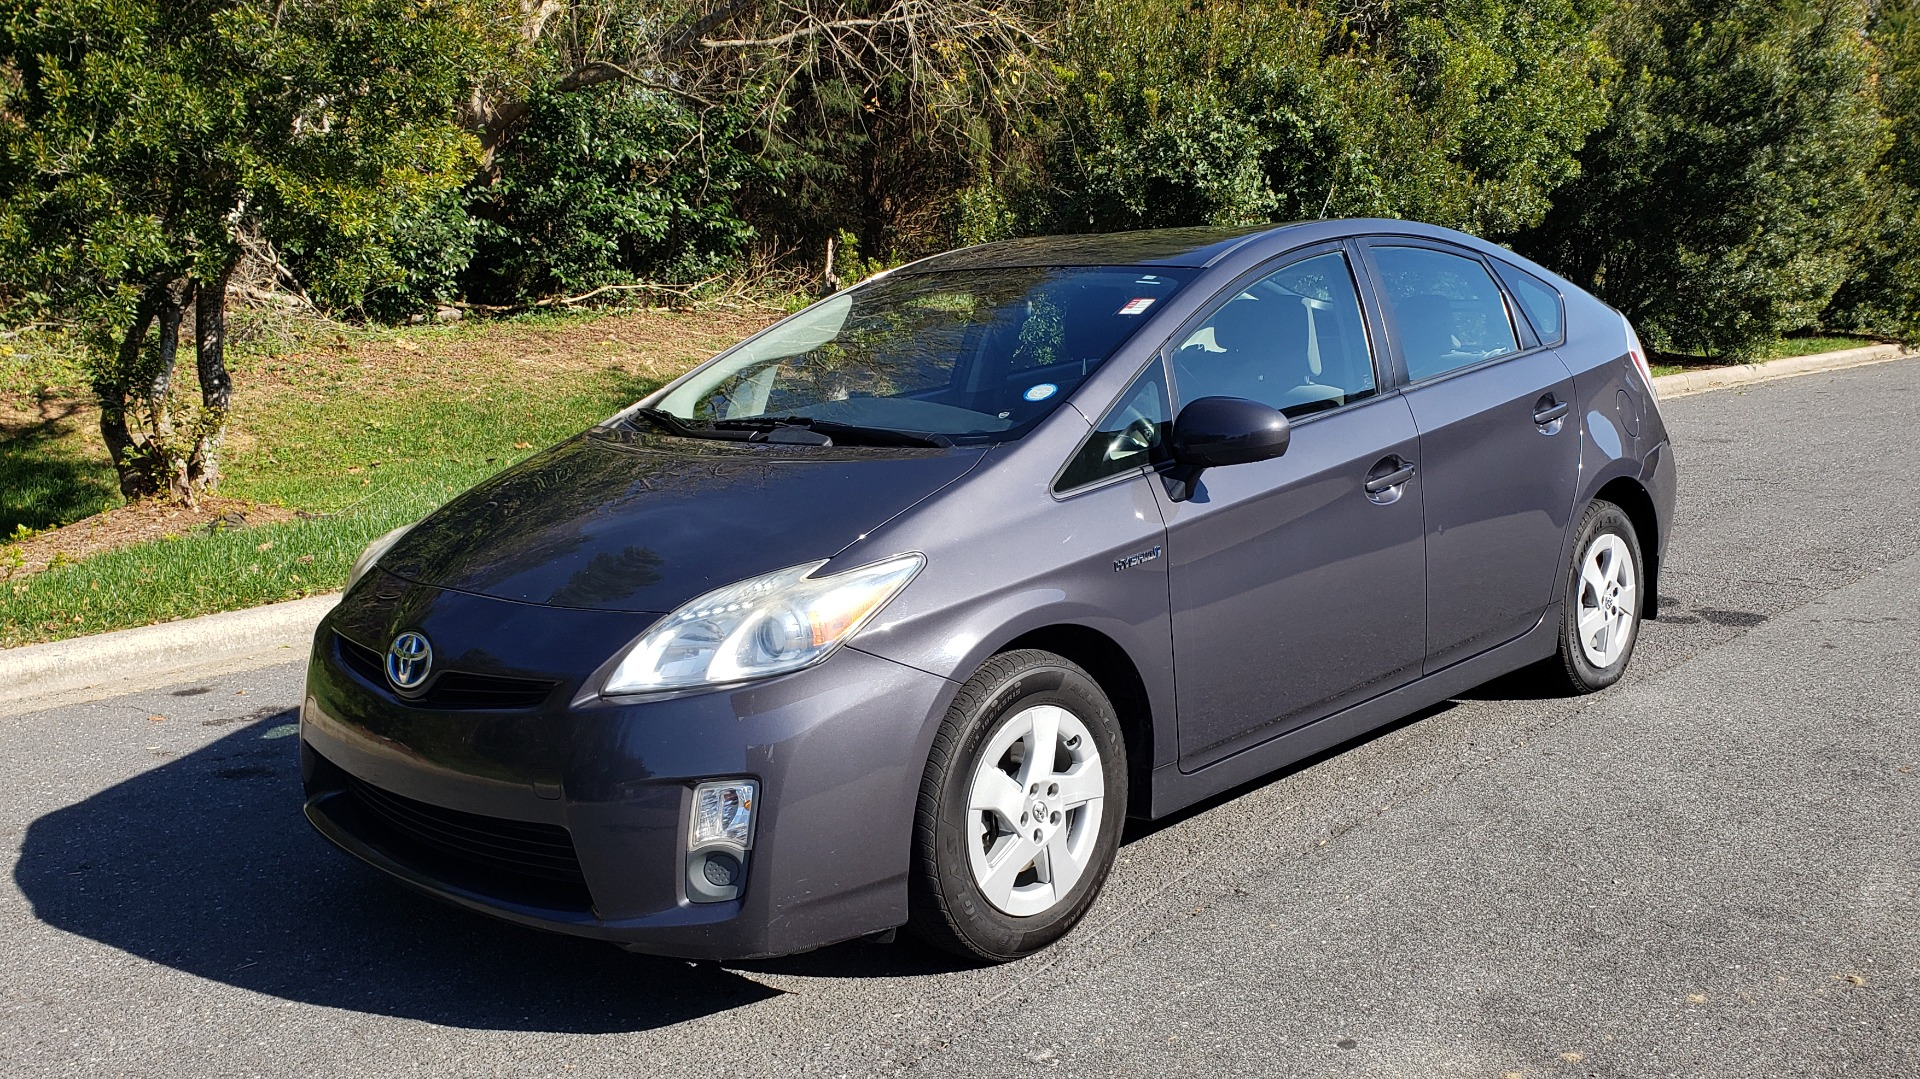 Used 2011 Toyota PRIUS ONE / HYBRID / 5-DOOR / HATCHBACK / 50MPG for sale Sold at Formula Imports in Charlotte NC 28227 1